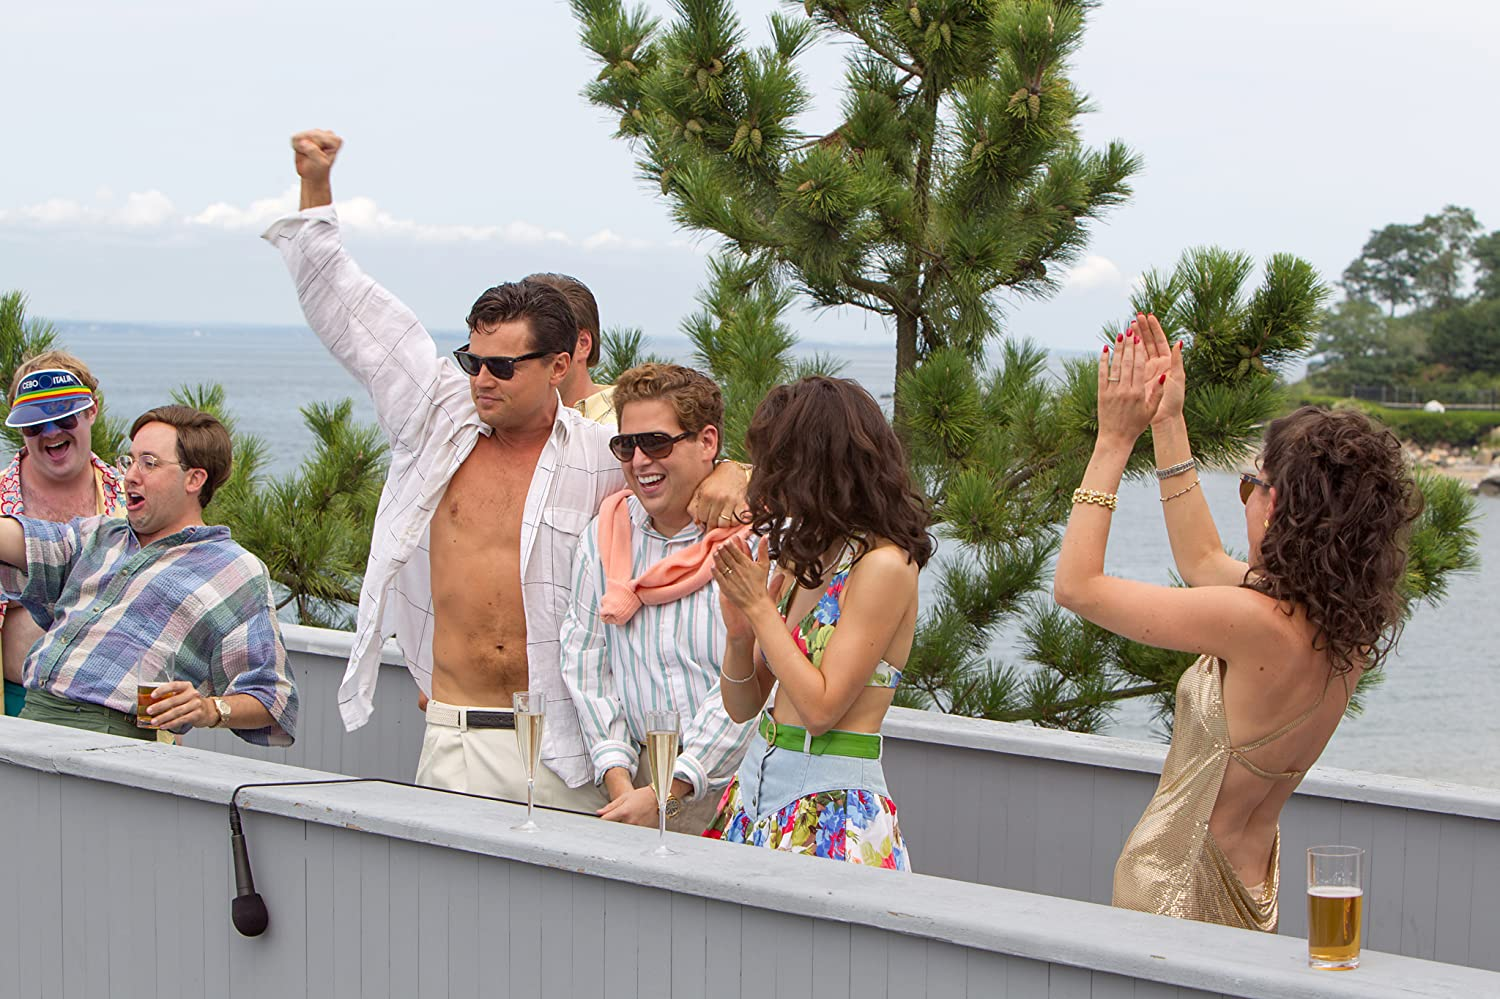 Leonardo DiCaprio, P.J. Byrne, Jonah Hill, Cristin Milioti, Henry Zebrowski, and MacKenzie Meehan in The Wolf of Wall Street (2013)